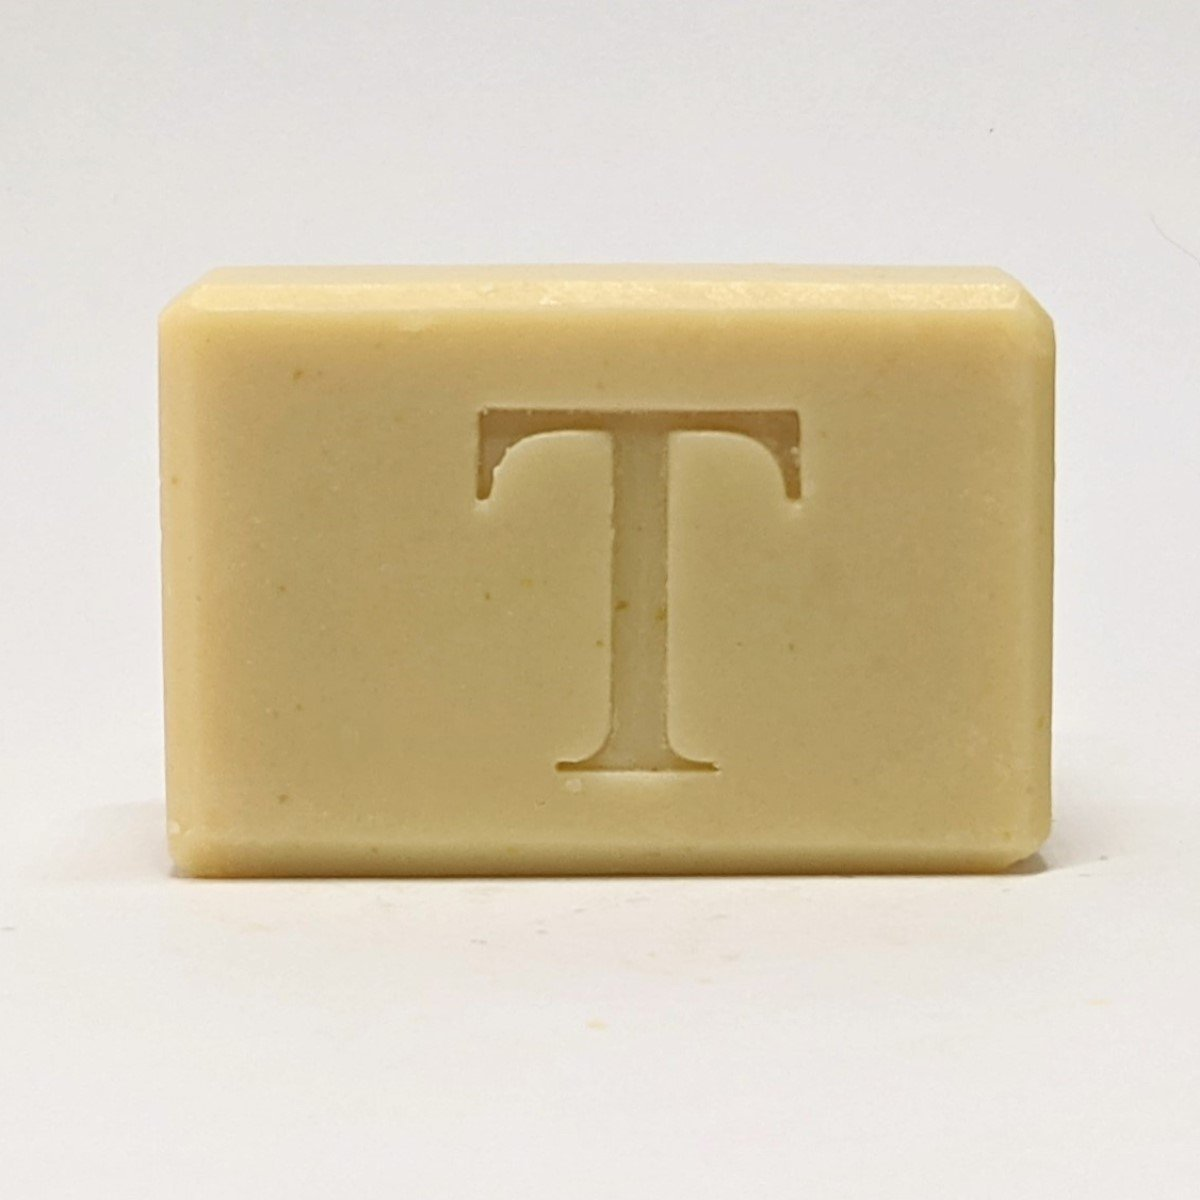 Oatmeal and Honey Goat's Milk Soap Bar Fragrance Free - Thompson's Luxury Soap